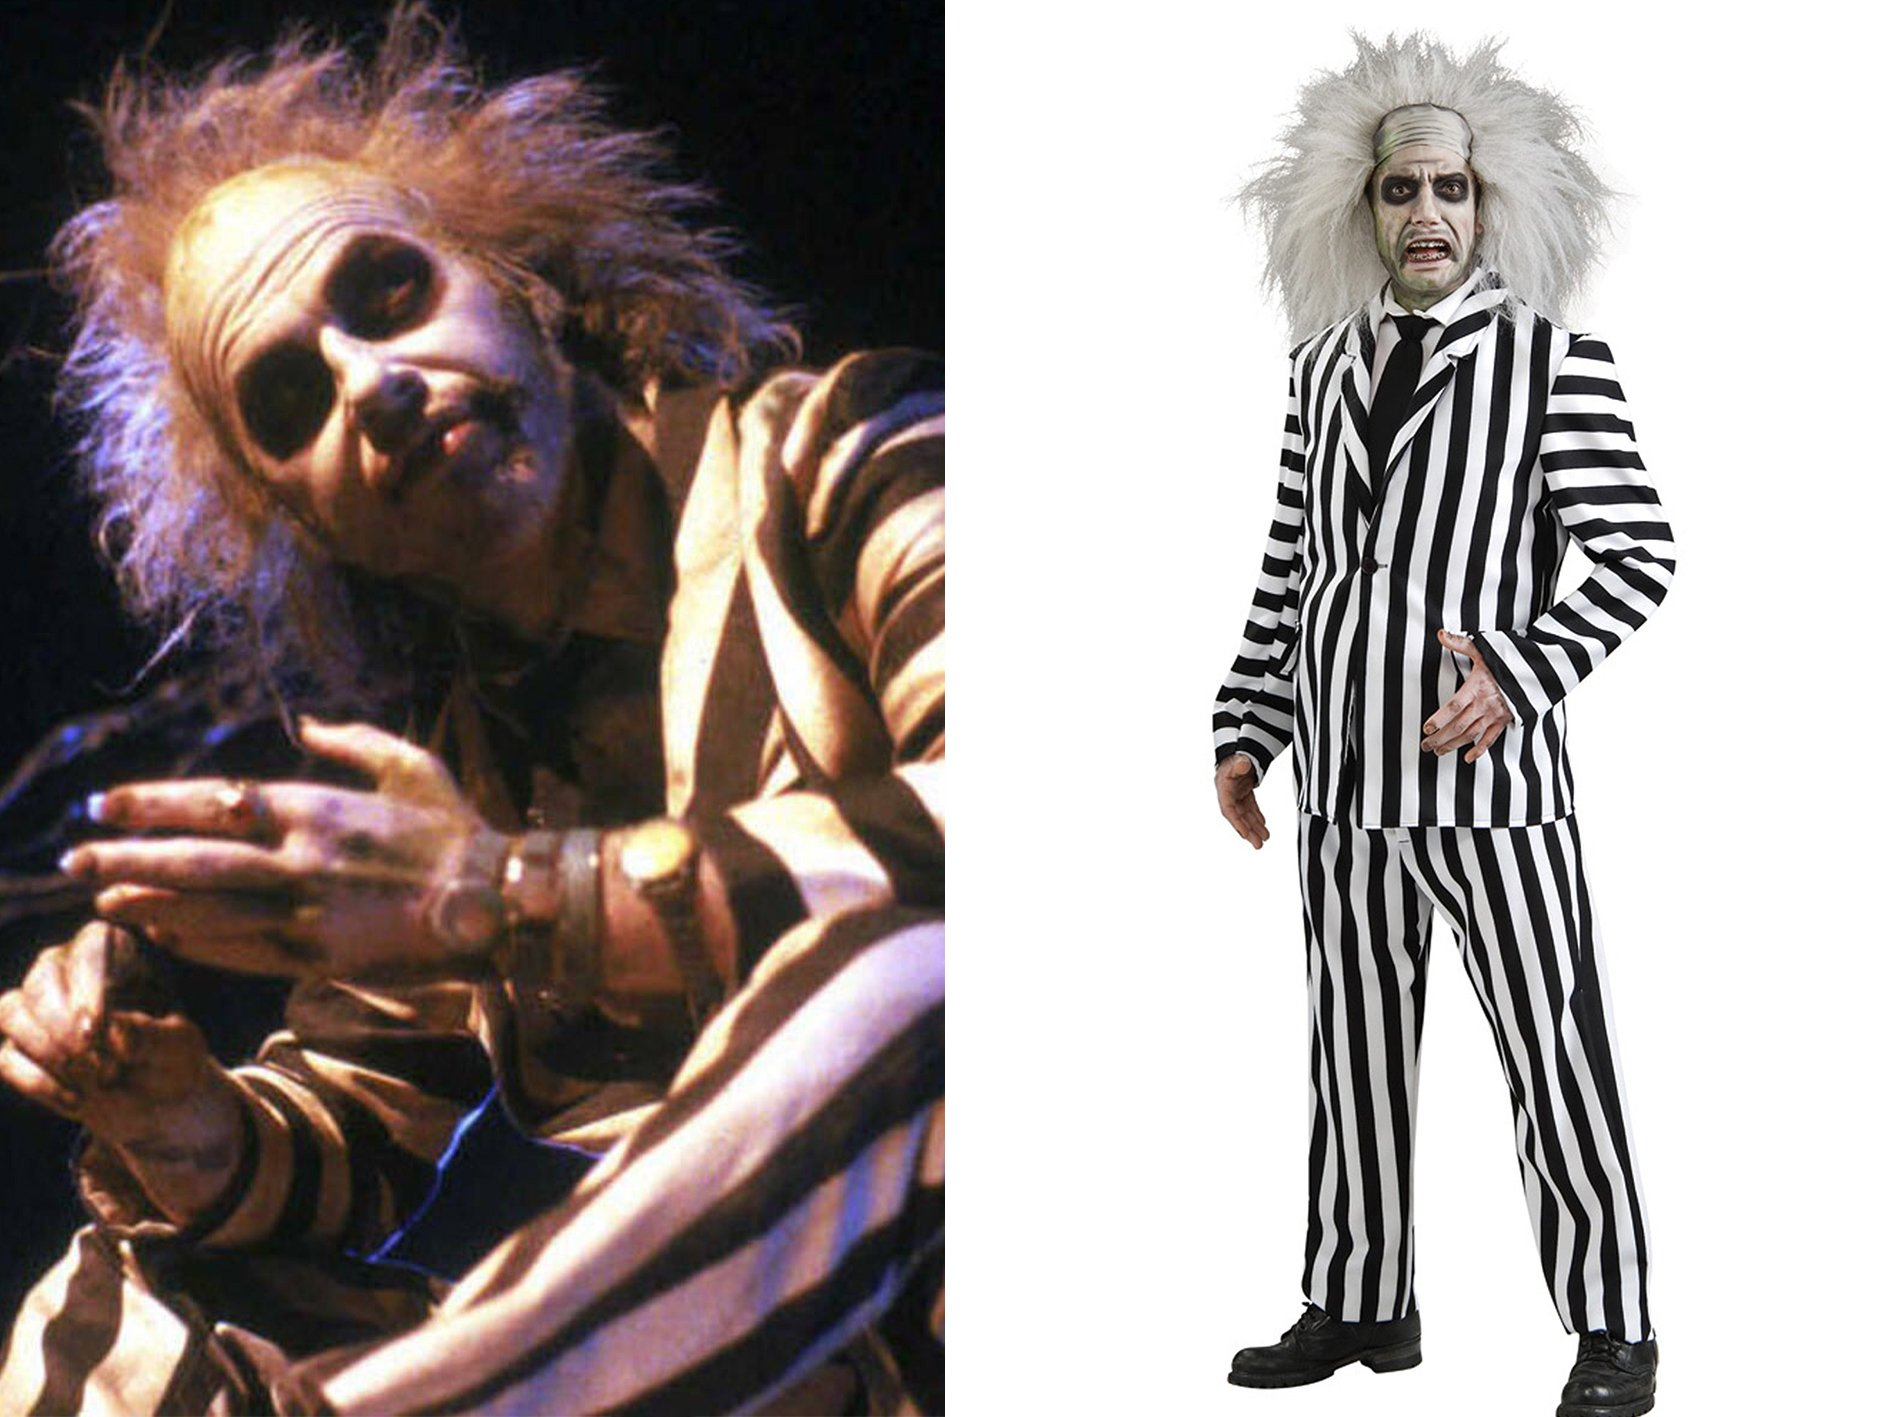 Beetlejuice 15 Halloween Costumes Inspired By The 80s - Who Will You Go As?